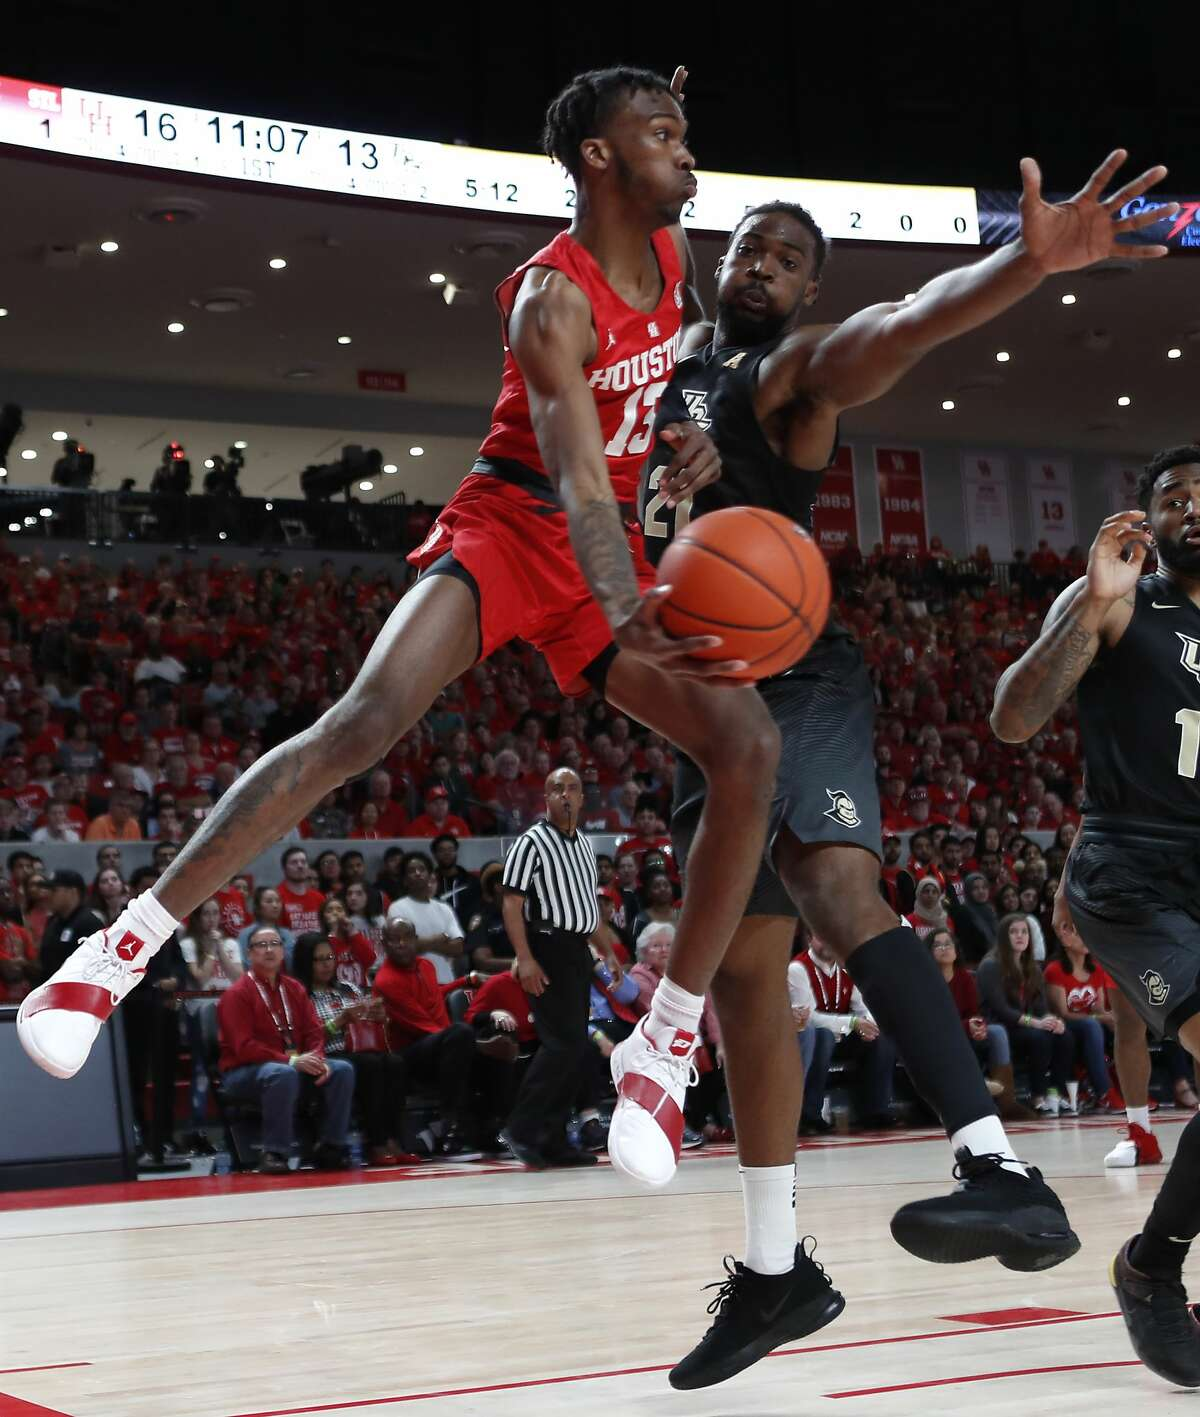 Houston guard Dejon Jarreau (13) flies past Central Florida forward Chad Brown (21) to pass the ball in the lane during the first half on a NCAA basketball game at Fertitta Center on Saturday, March 2, 2019, in Houston.